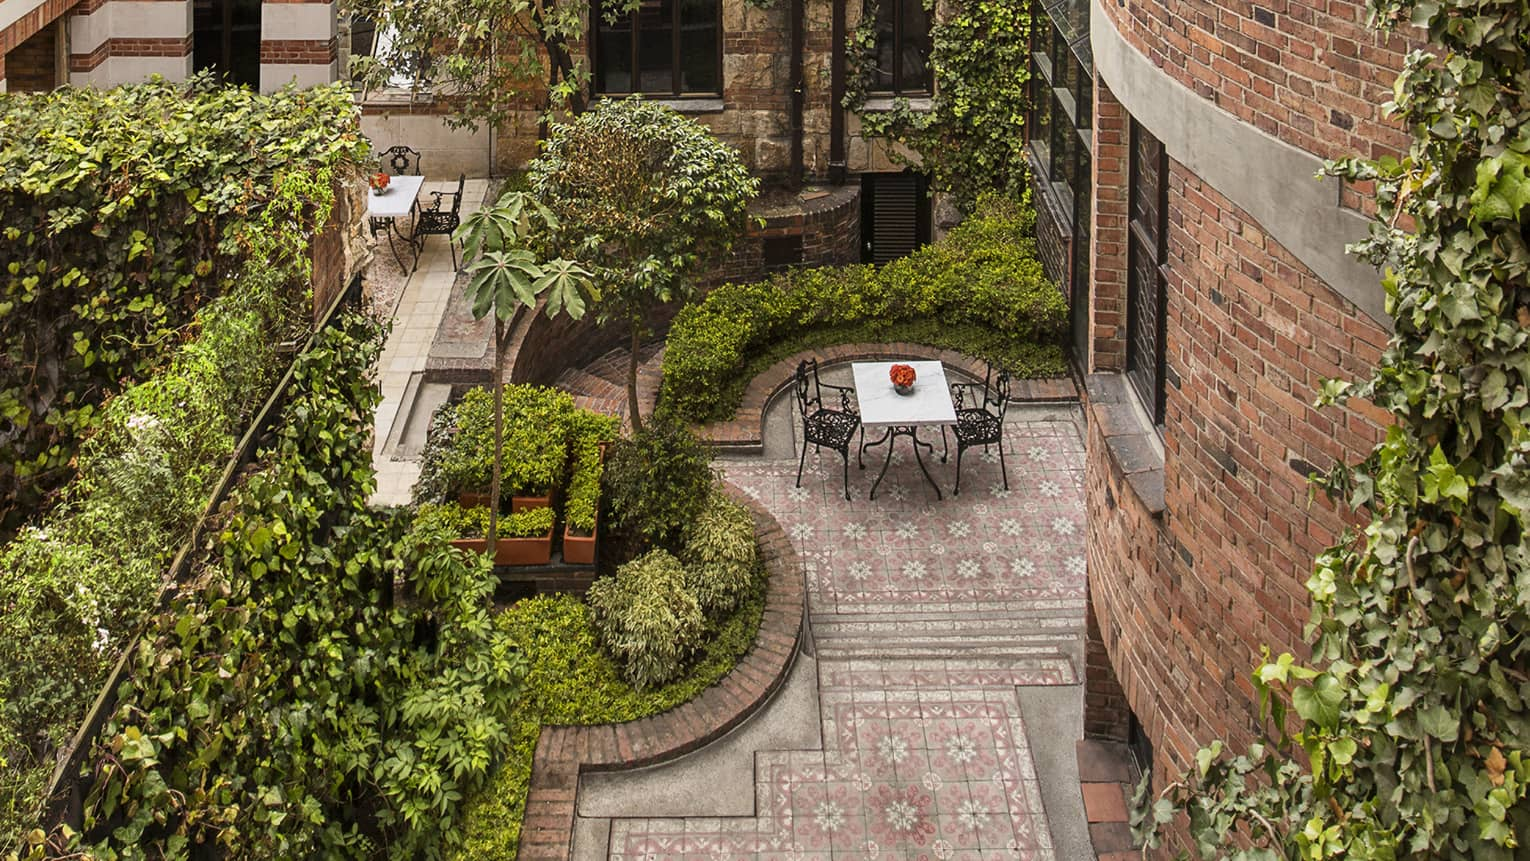 Aerial view of wrought-iron patio tables and chairs in brick courtyard, trees and shrubs throughout